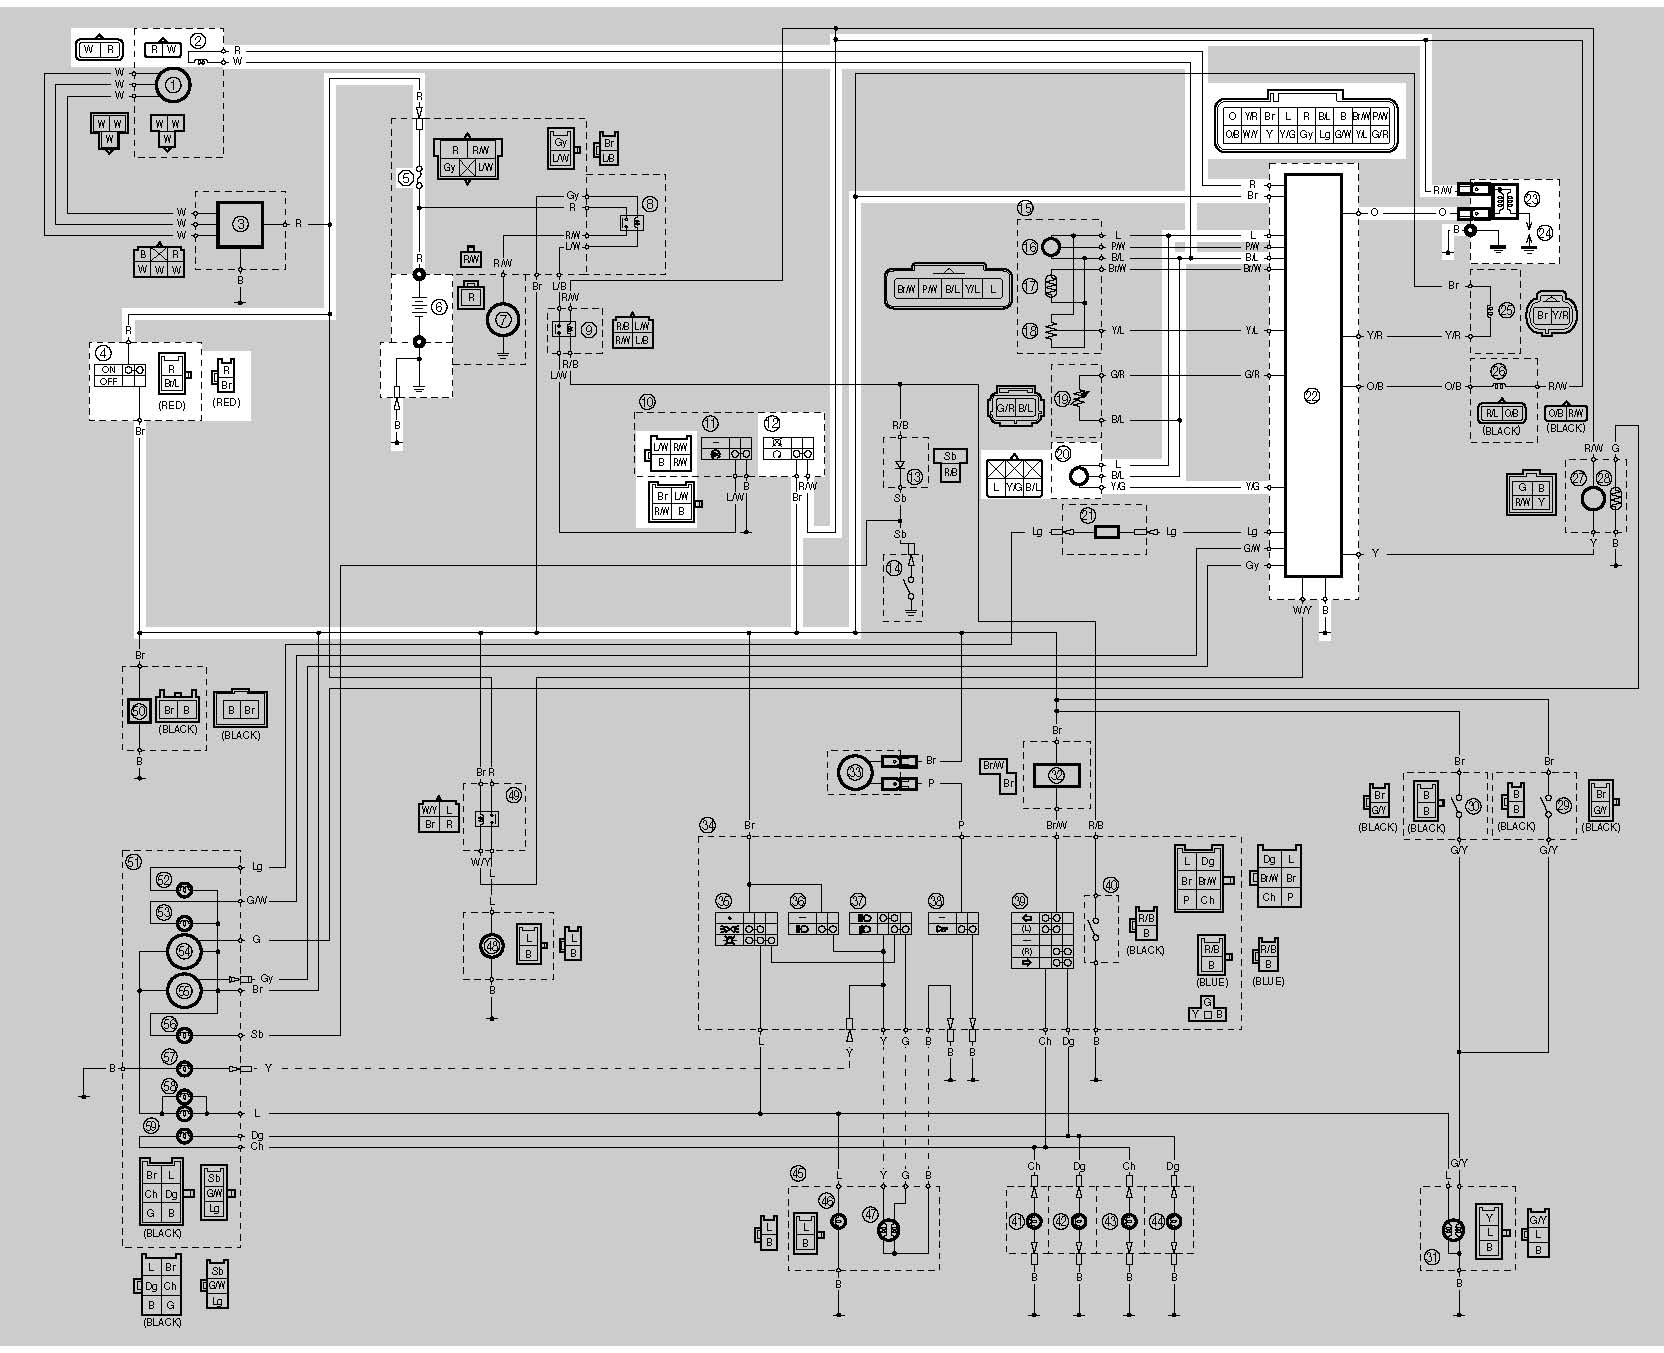 hight resolution of wiring diagram kelistrikan yamaha vixion skema wiring diagram kelistrikan yamaha vixiona